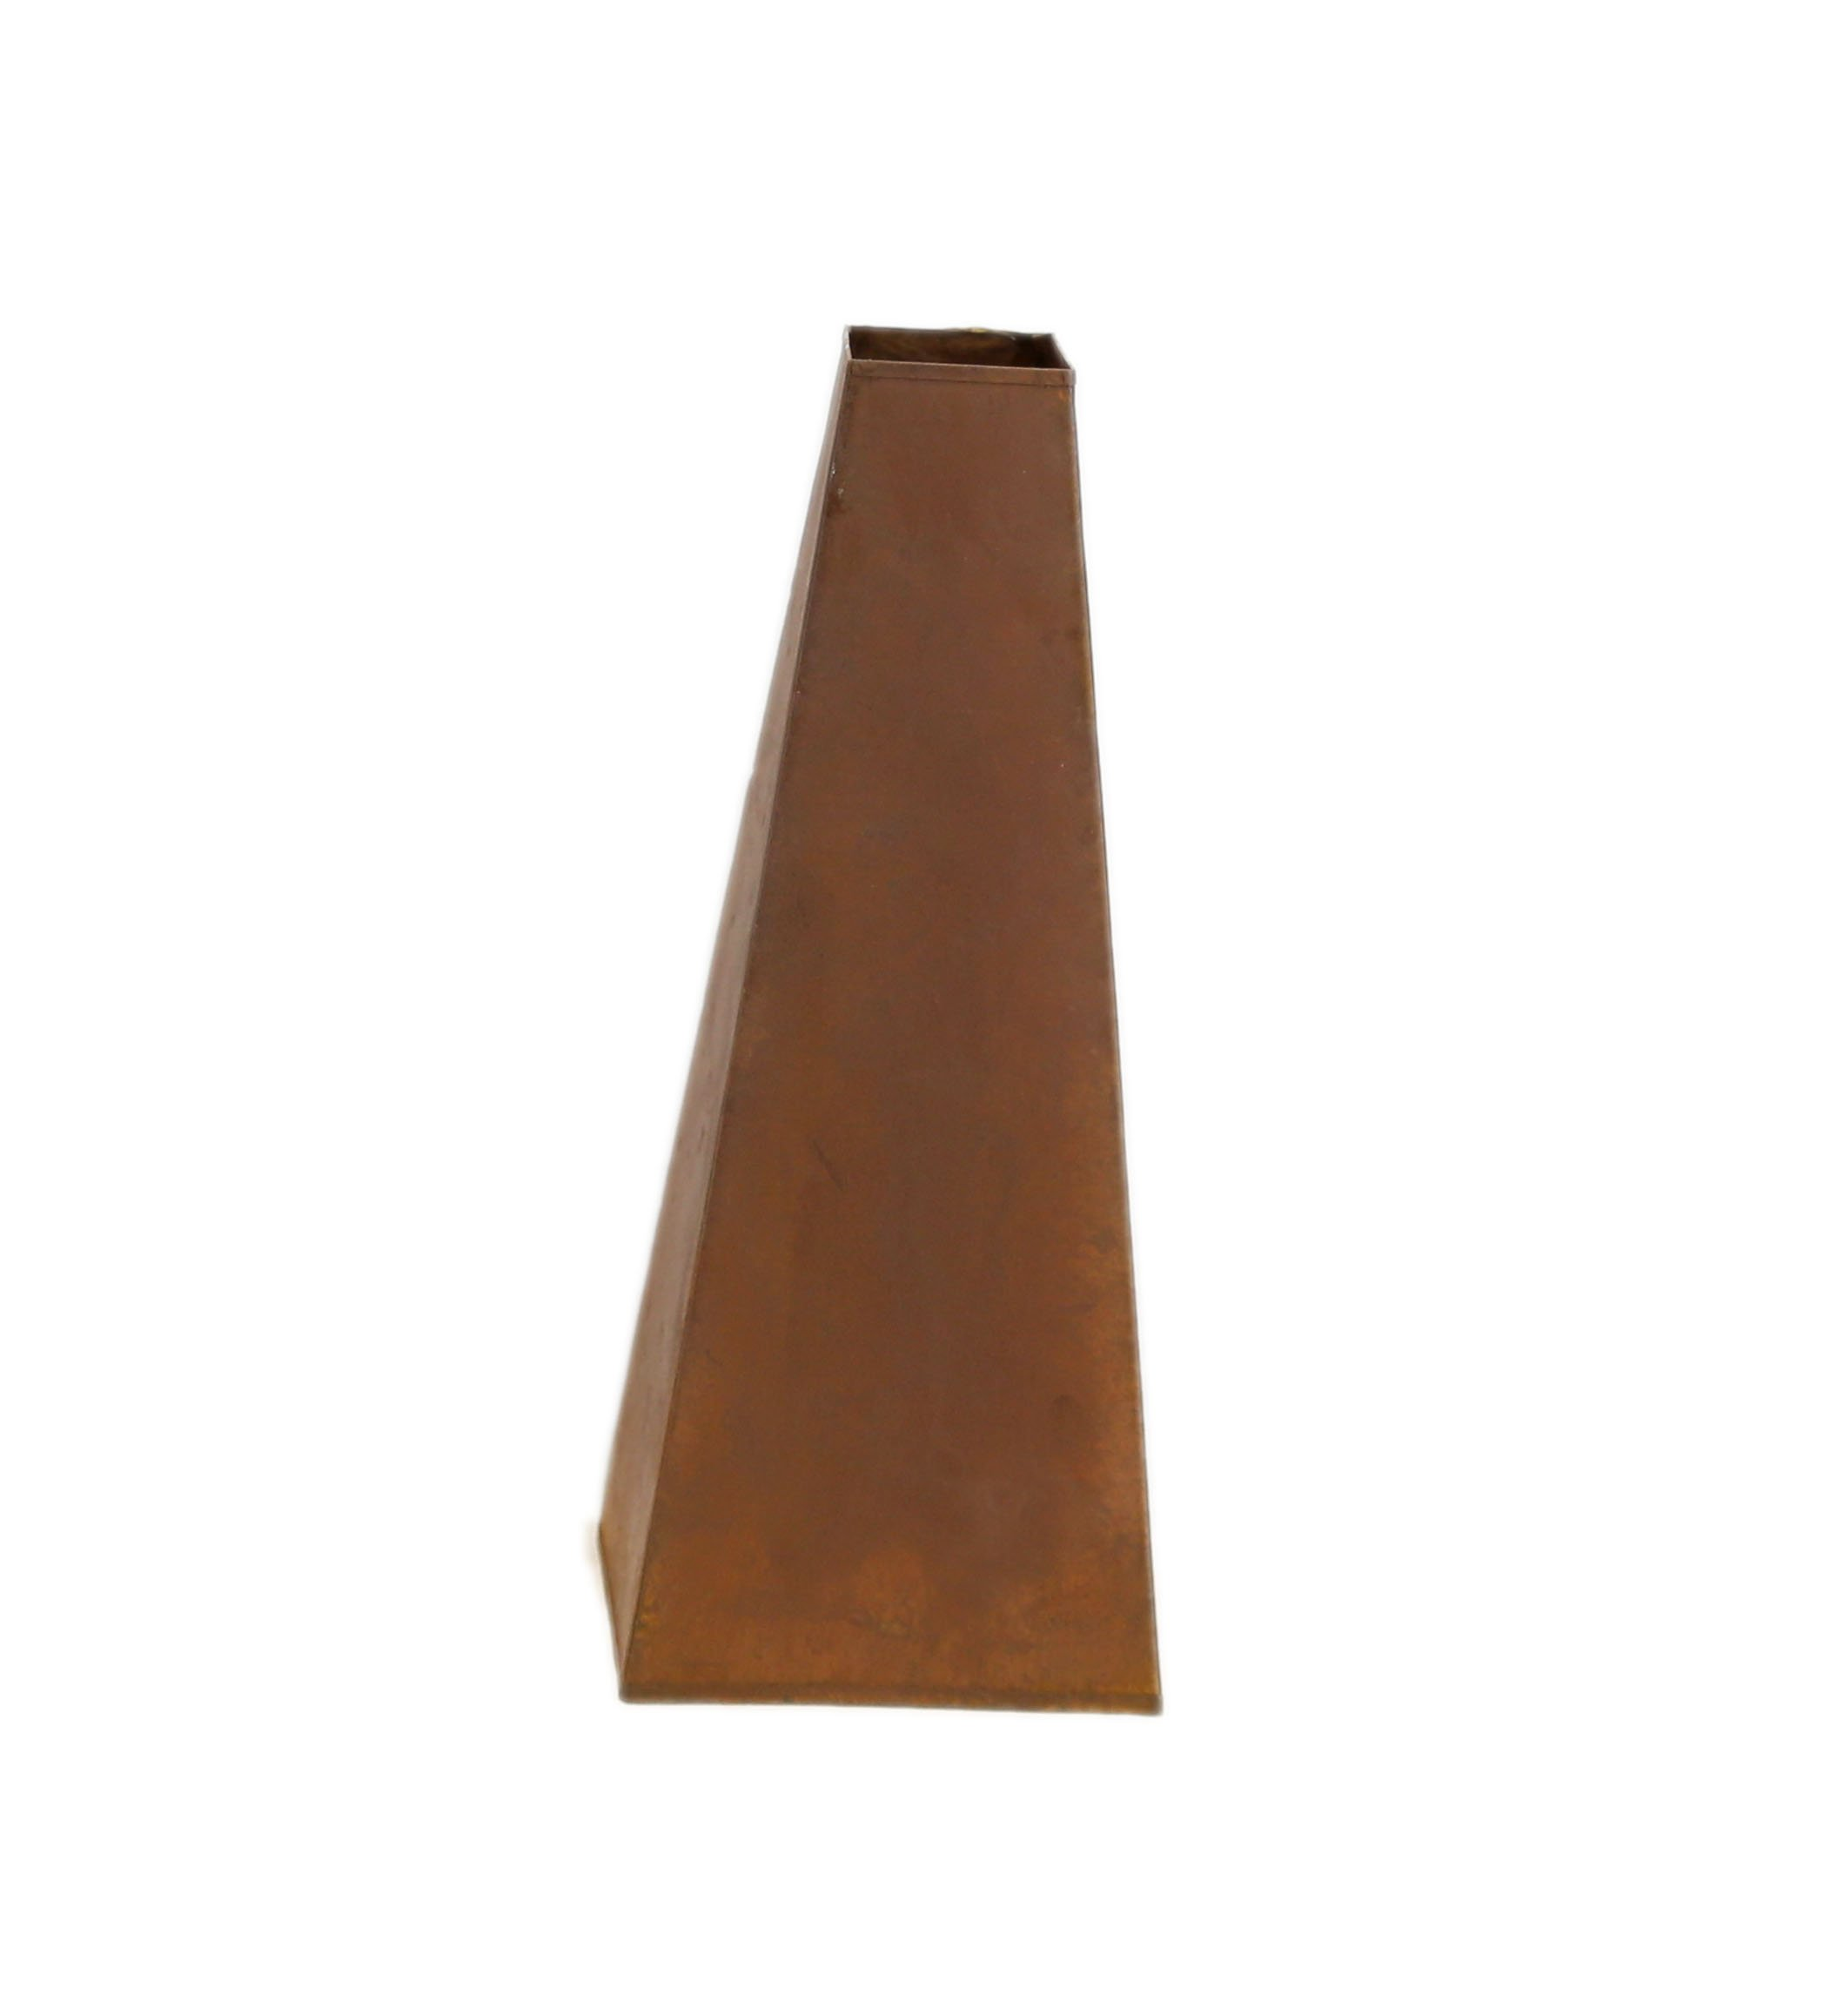 Large Rusty Tapered Vase